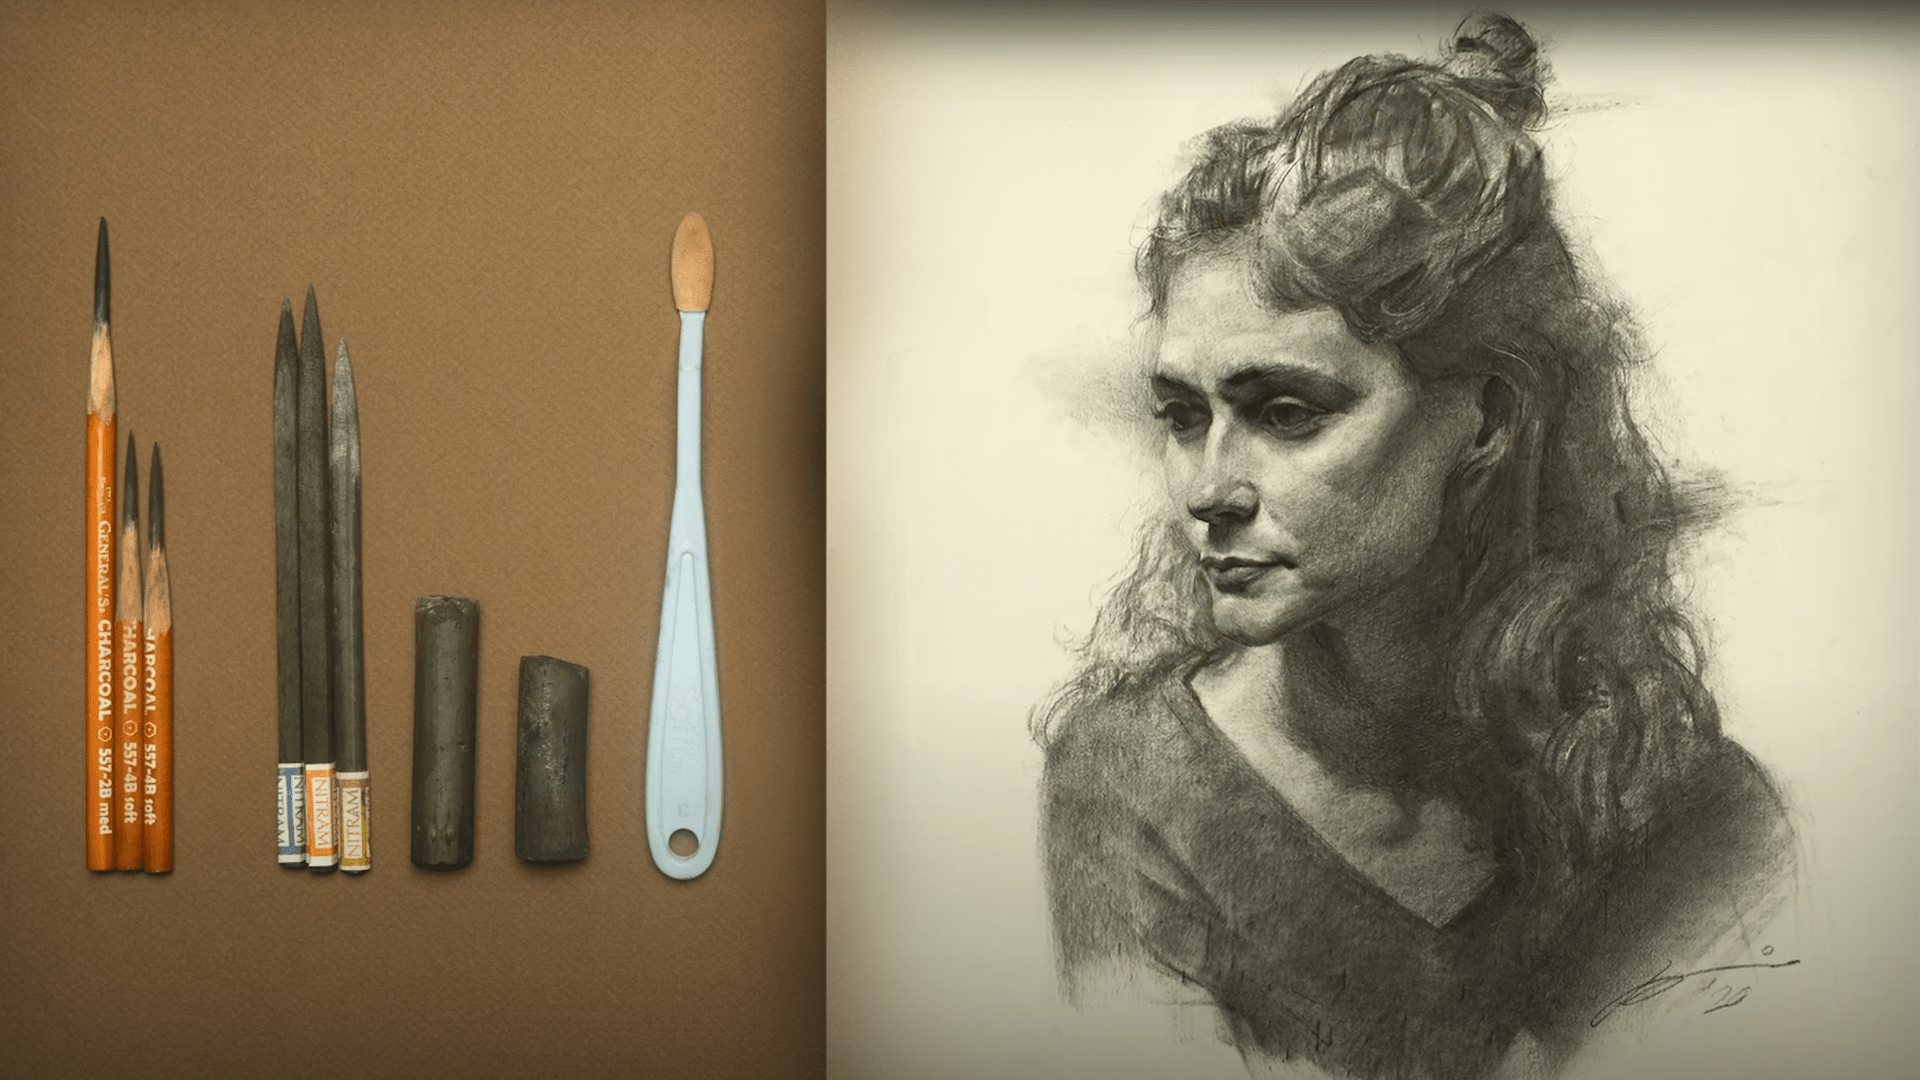 A charcoal portrait next to charcoal tools